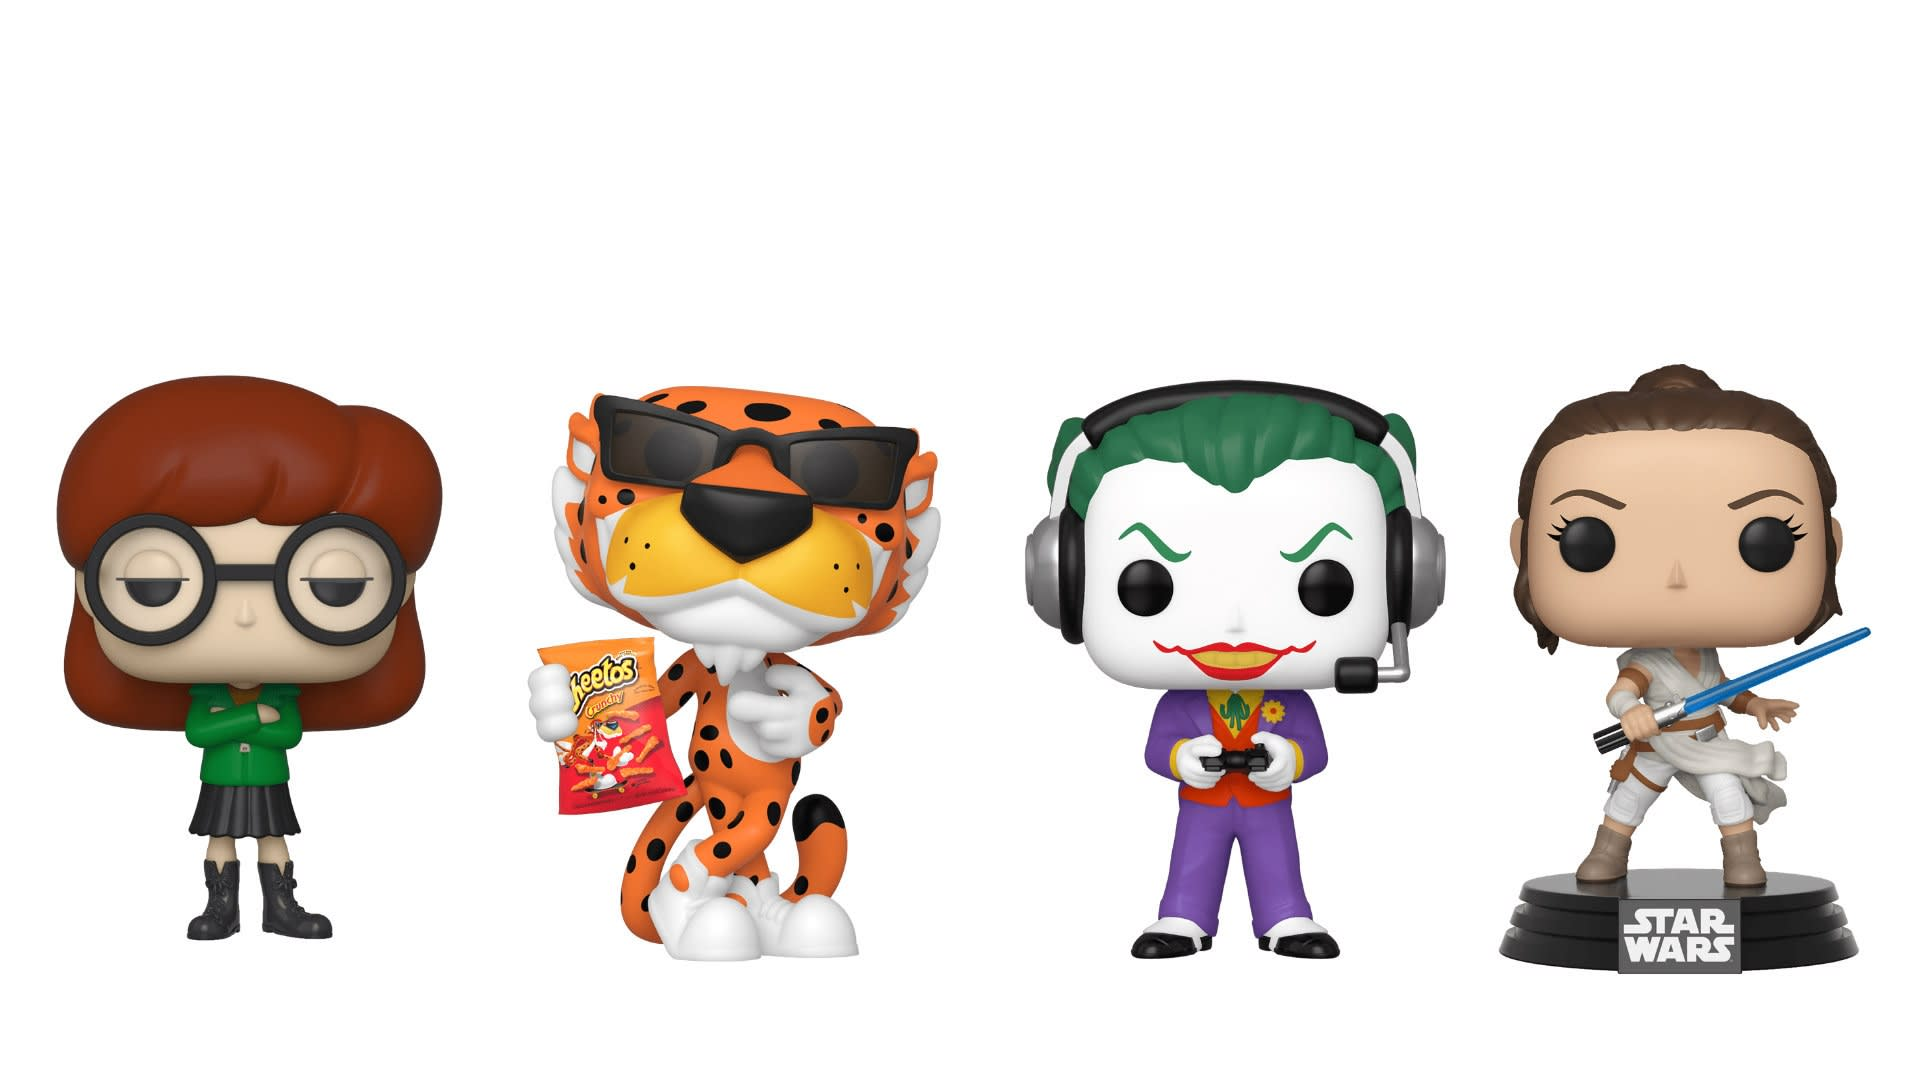 Collectible Funko Pops from Funko.